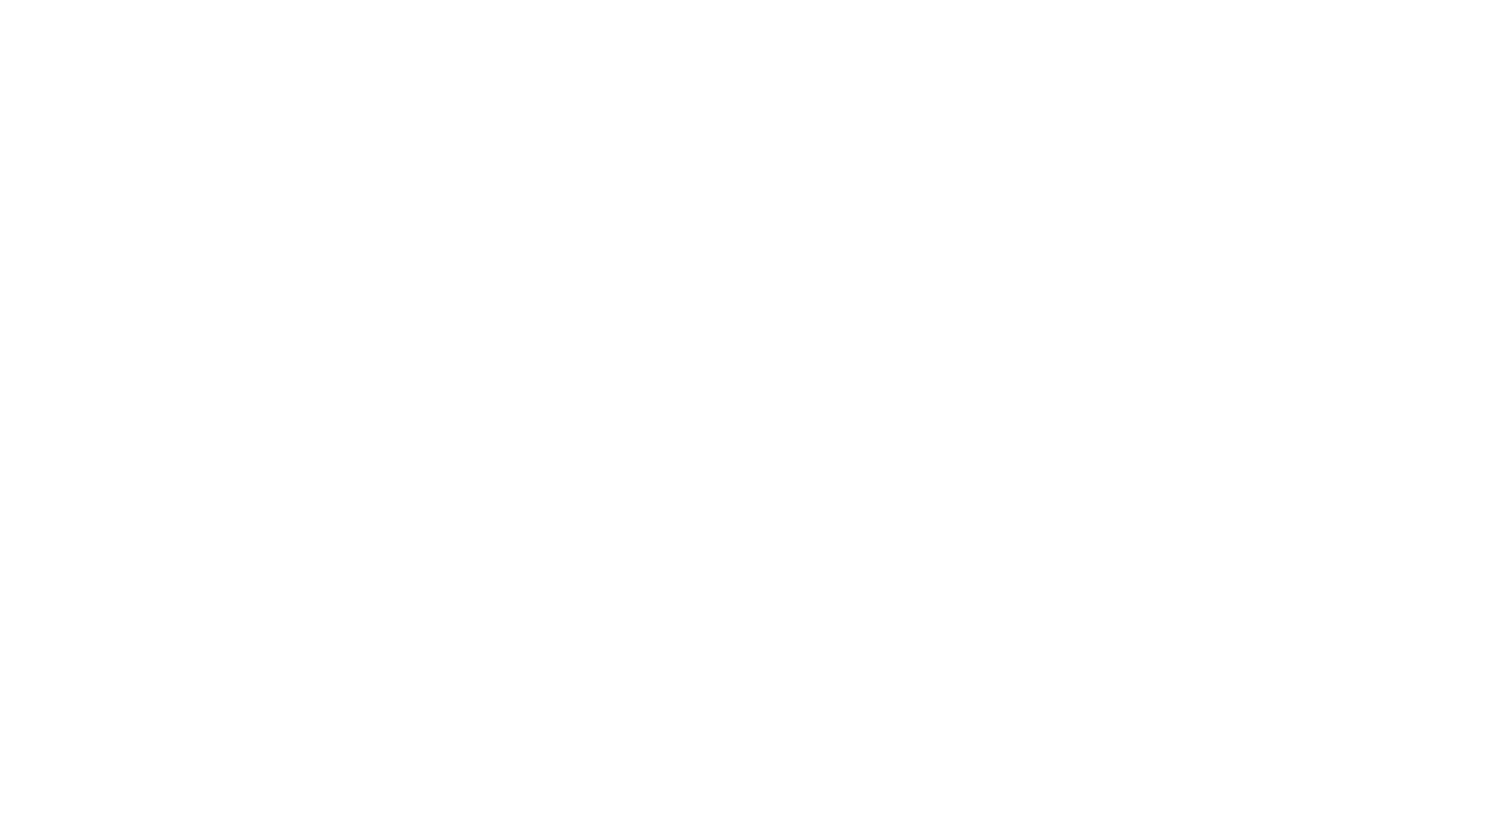 Hockey Night In Brampton